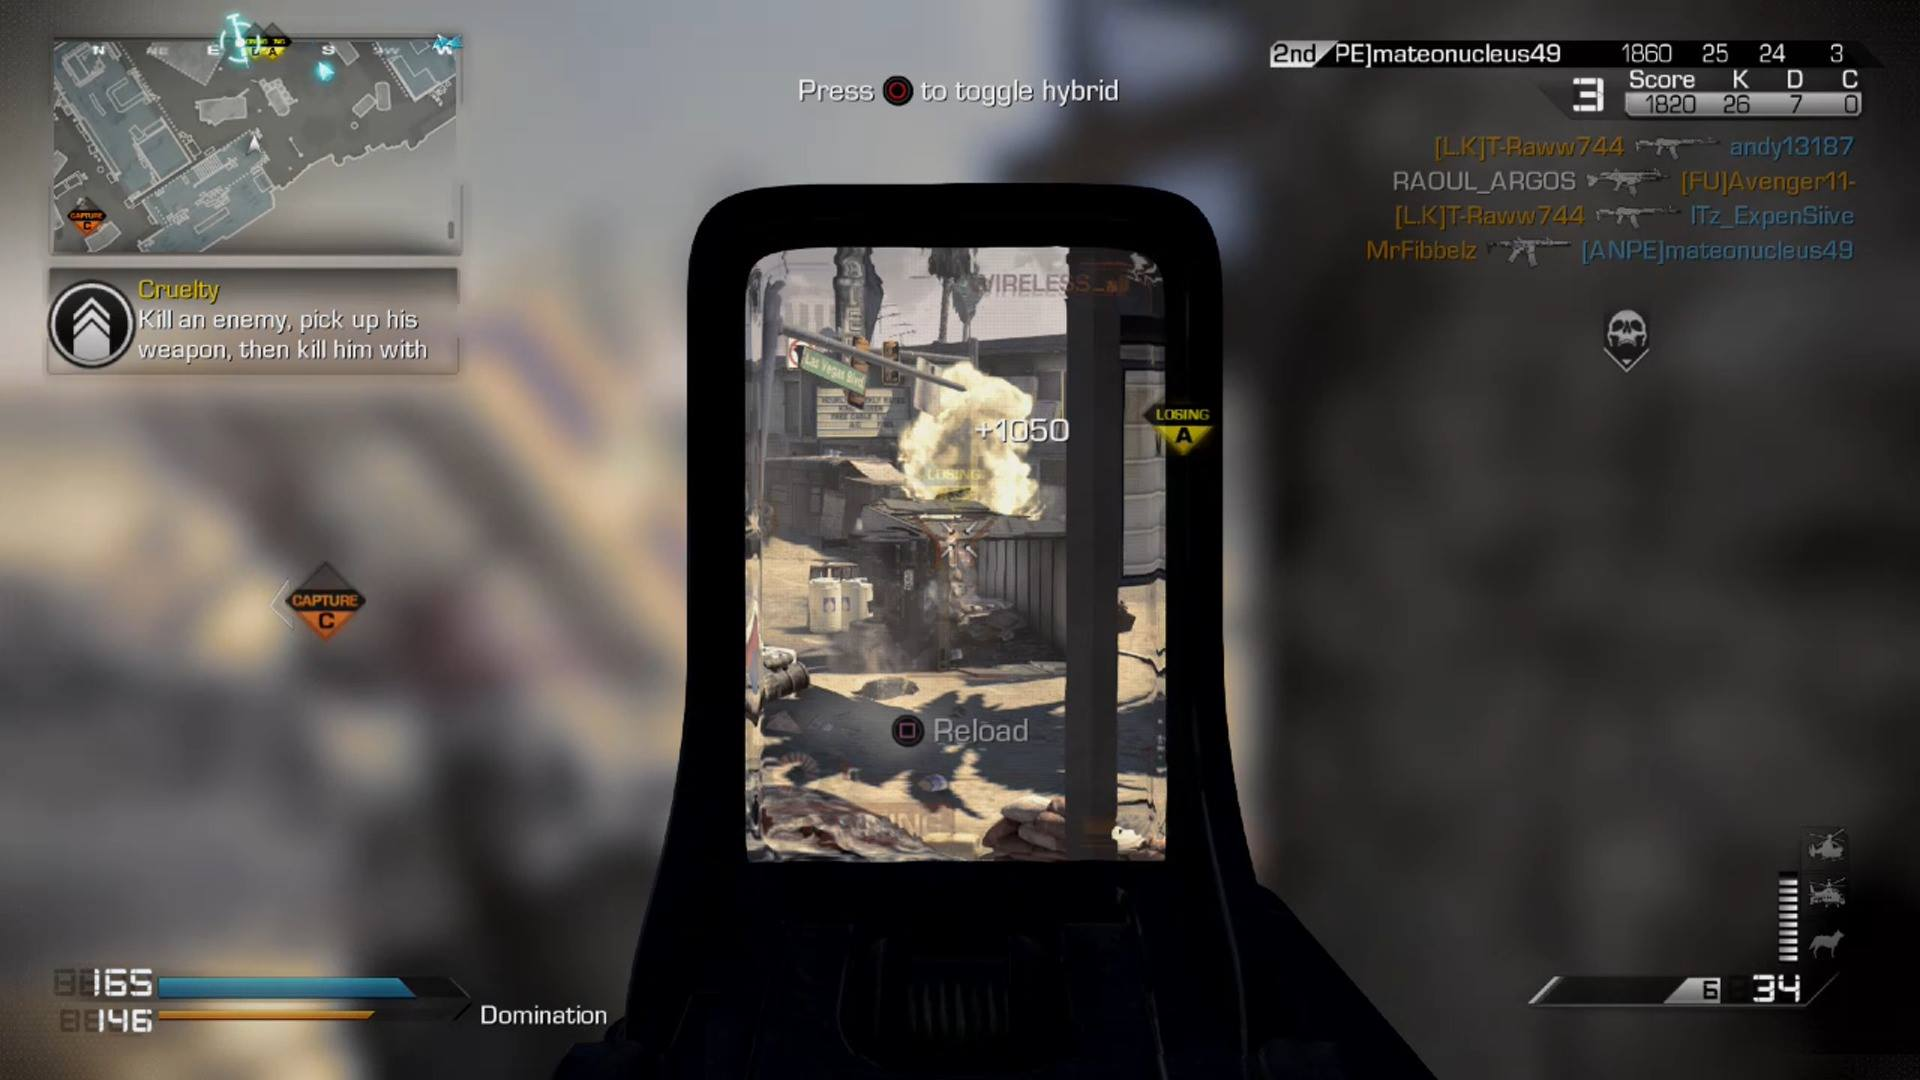 COD:Ghosts Domination @ Octane + how to share video gameplay